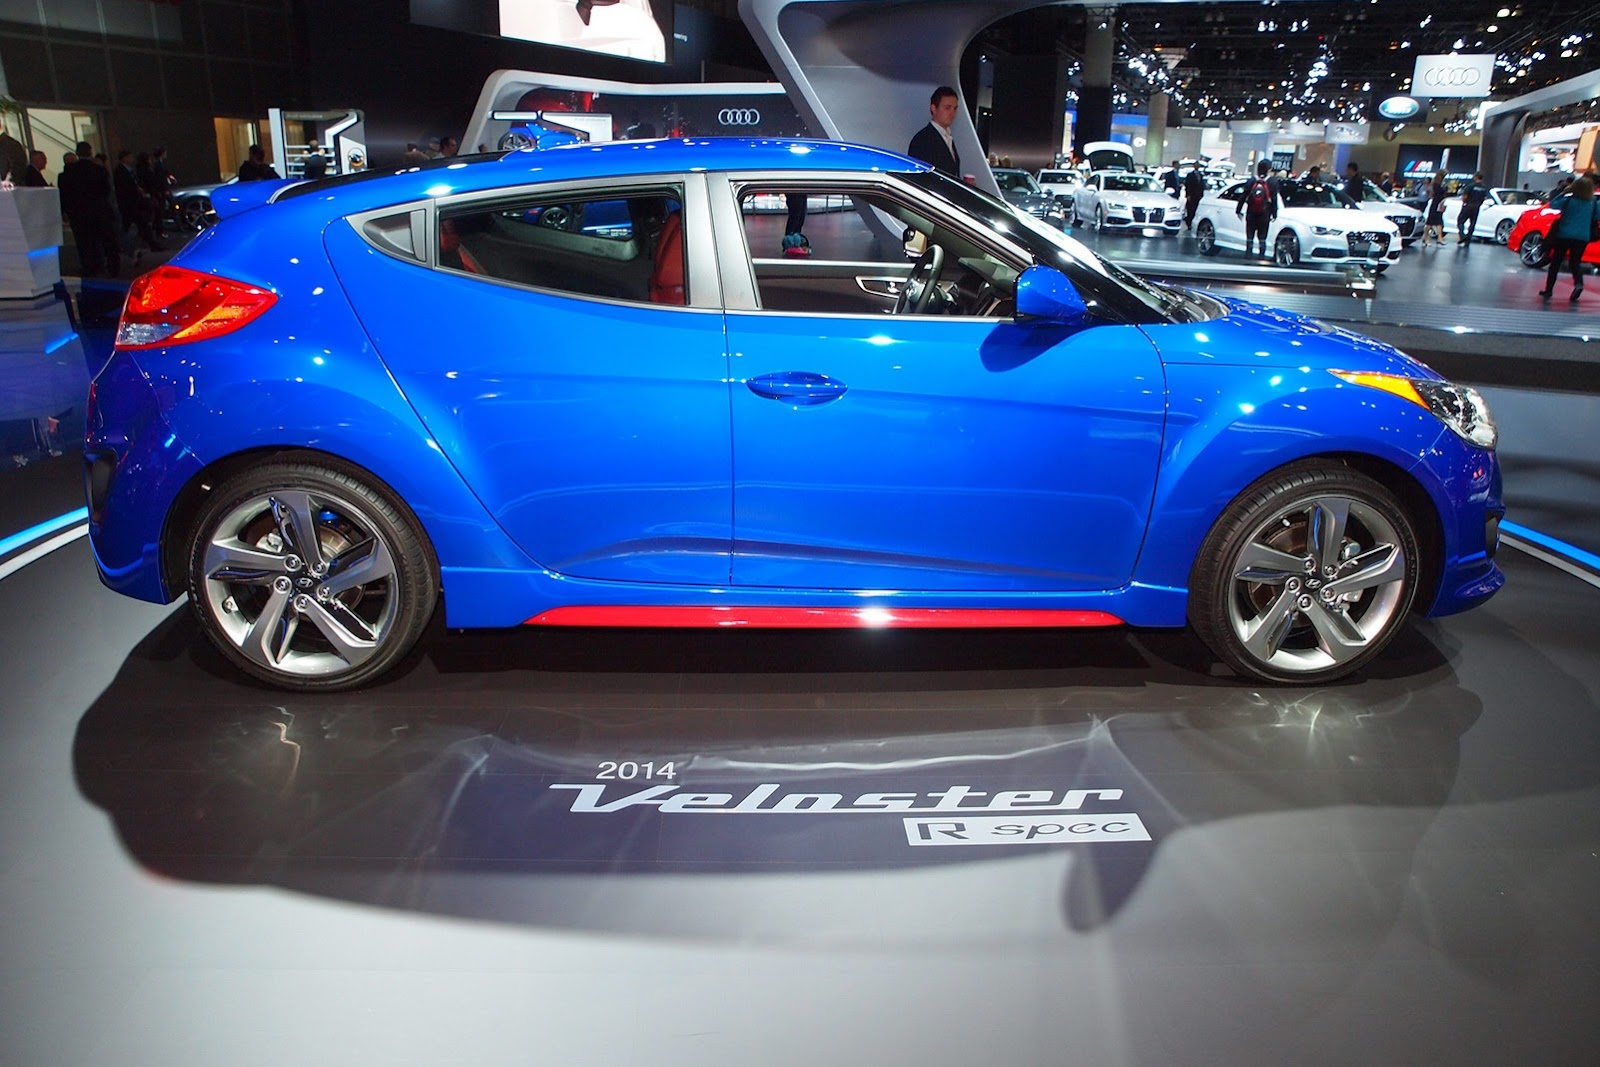 http://lh6.ggpht.com/-_Oh5PyibdX8/Uo_v5utIQ0I/AAAAAAAPOMI/yoM6VUYbN2M/s1600/2013-Los-Angeles-Auto-Show-103%25255B2%25255D.jpg